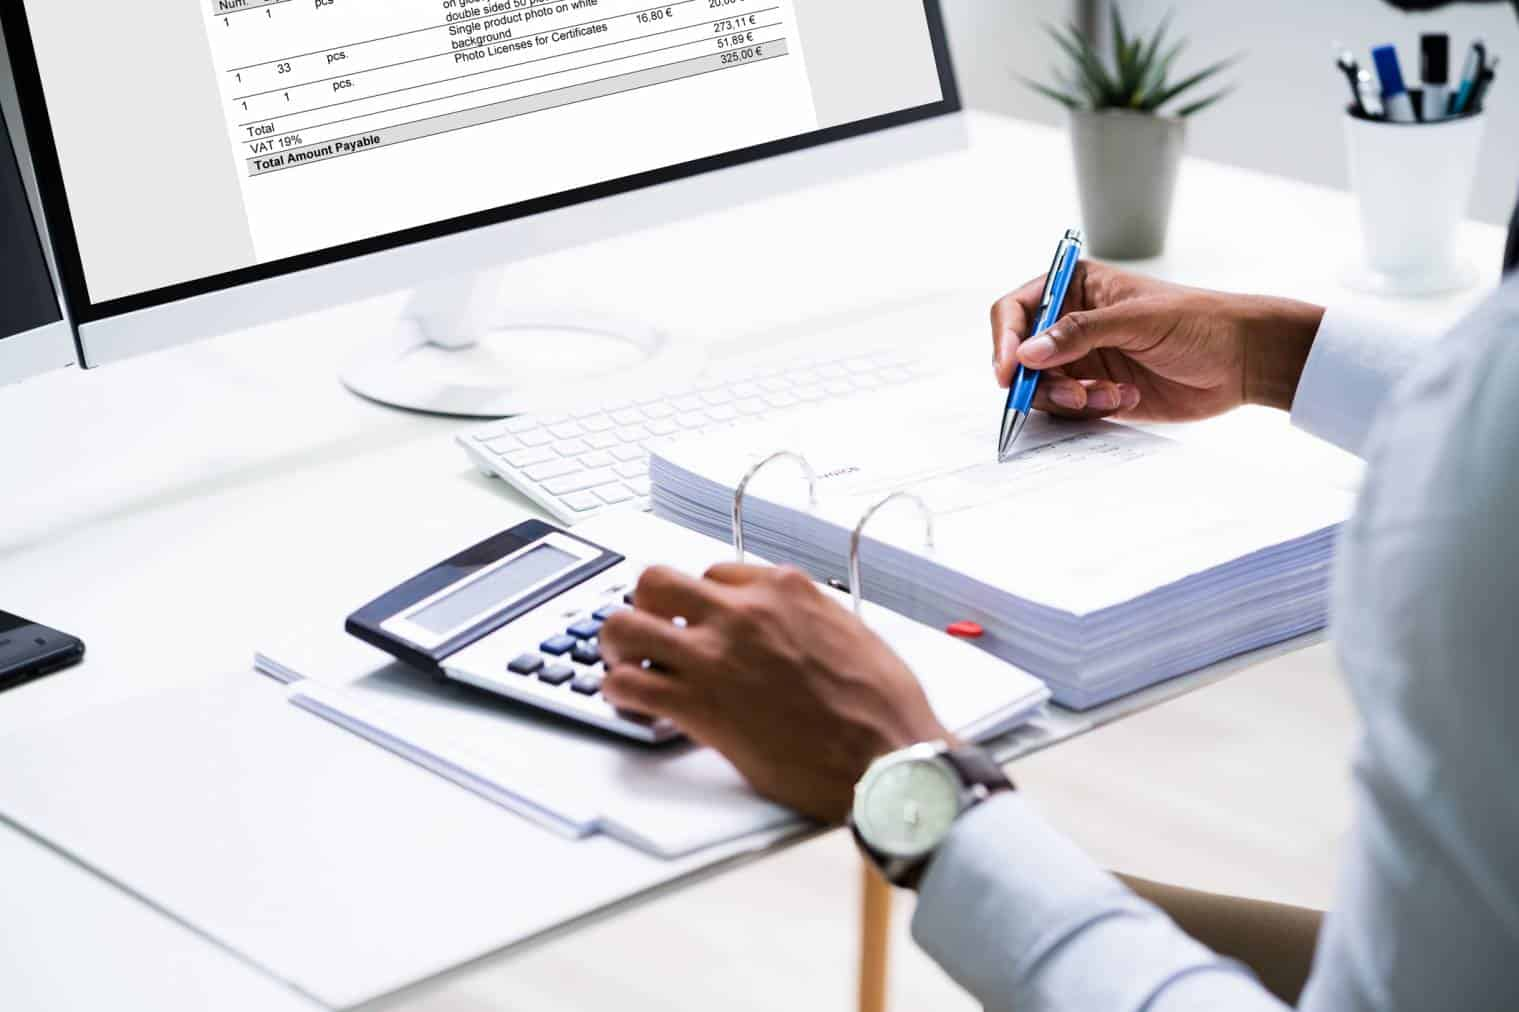 Types of invoices in accounting